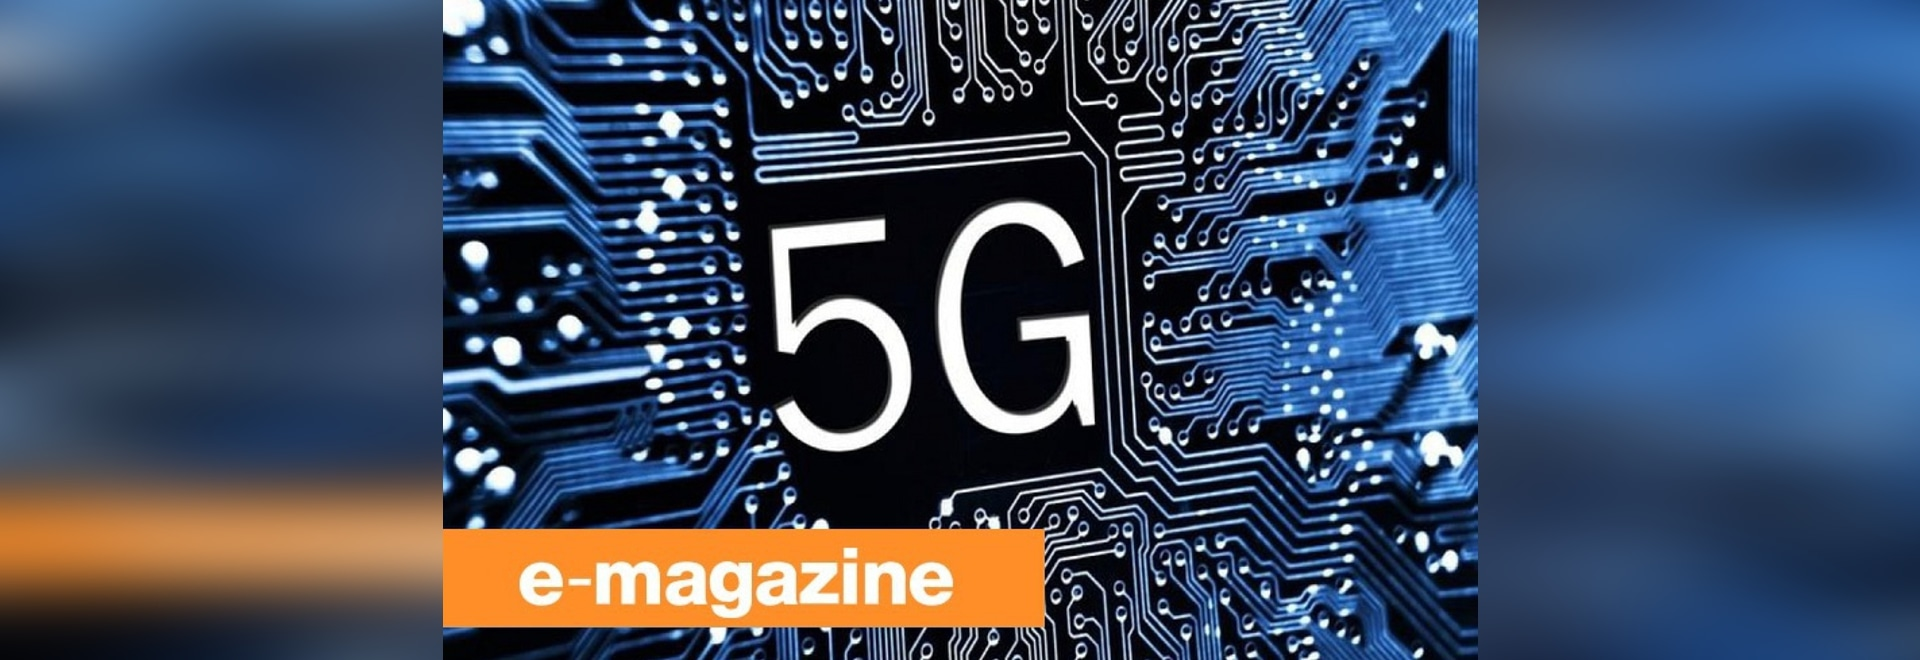 The 5G Standard is Taking Off